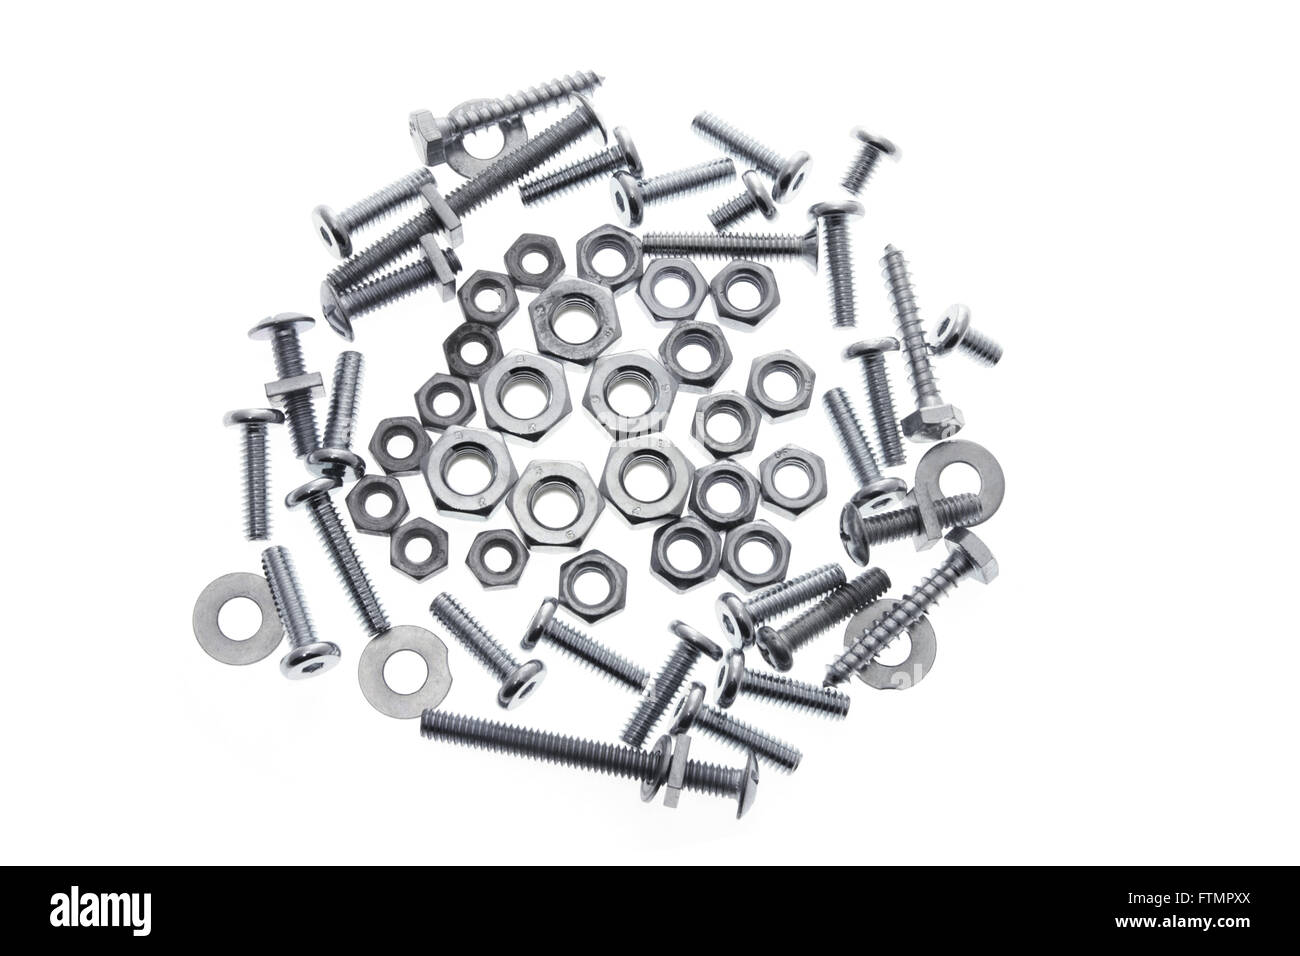 Bolts and Nuts - Stock Image